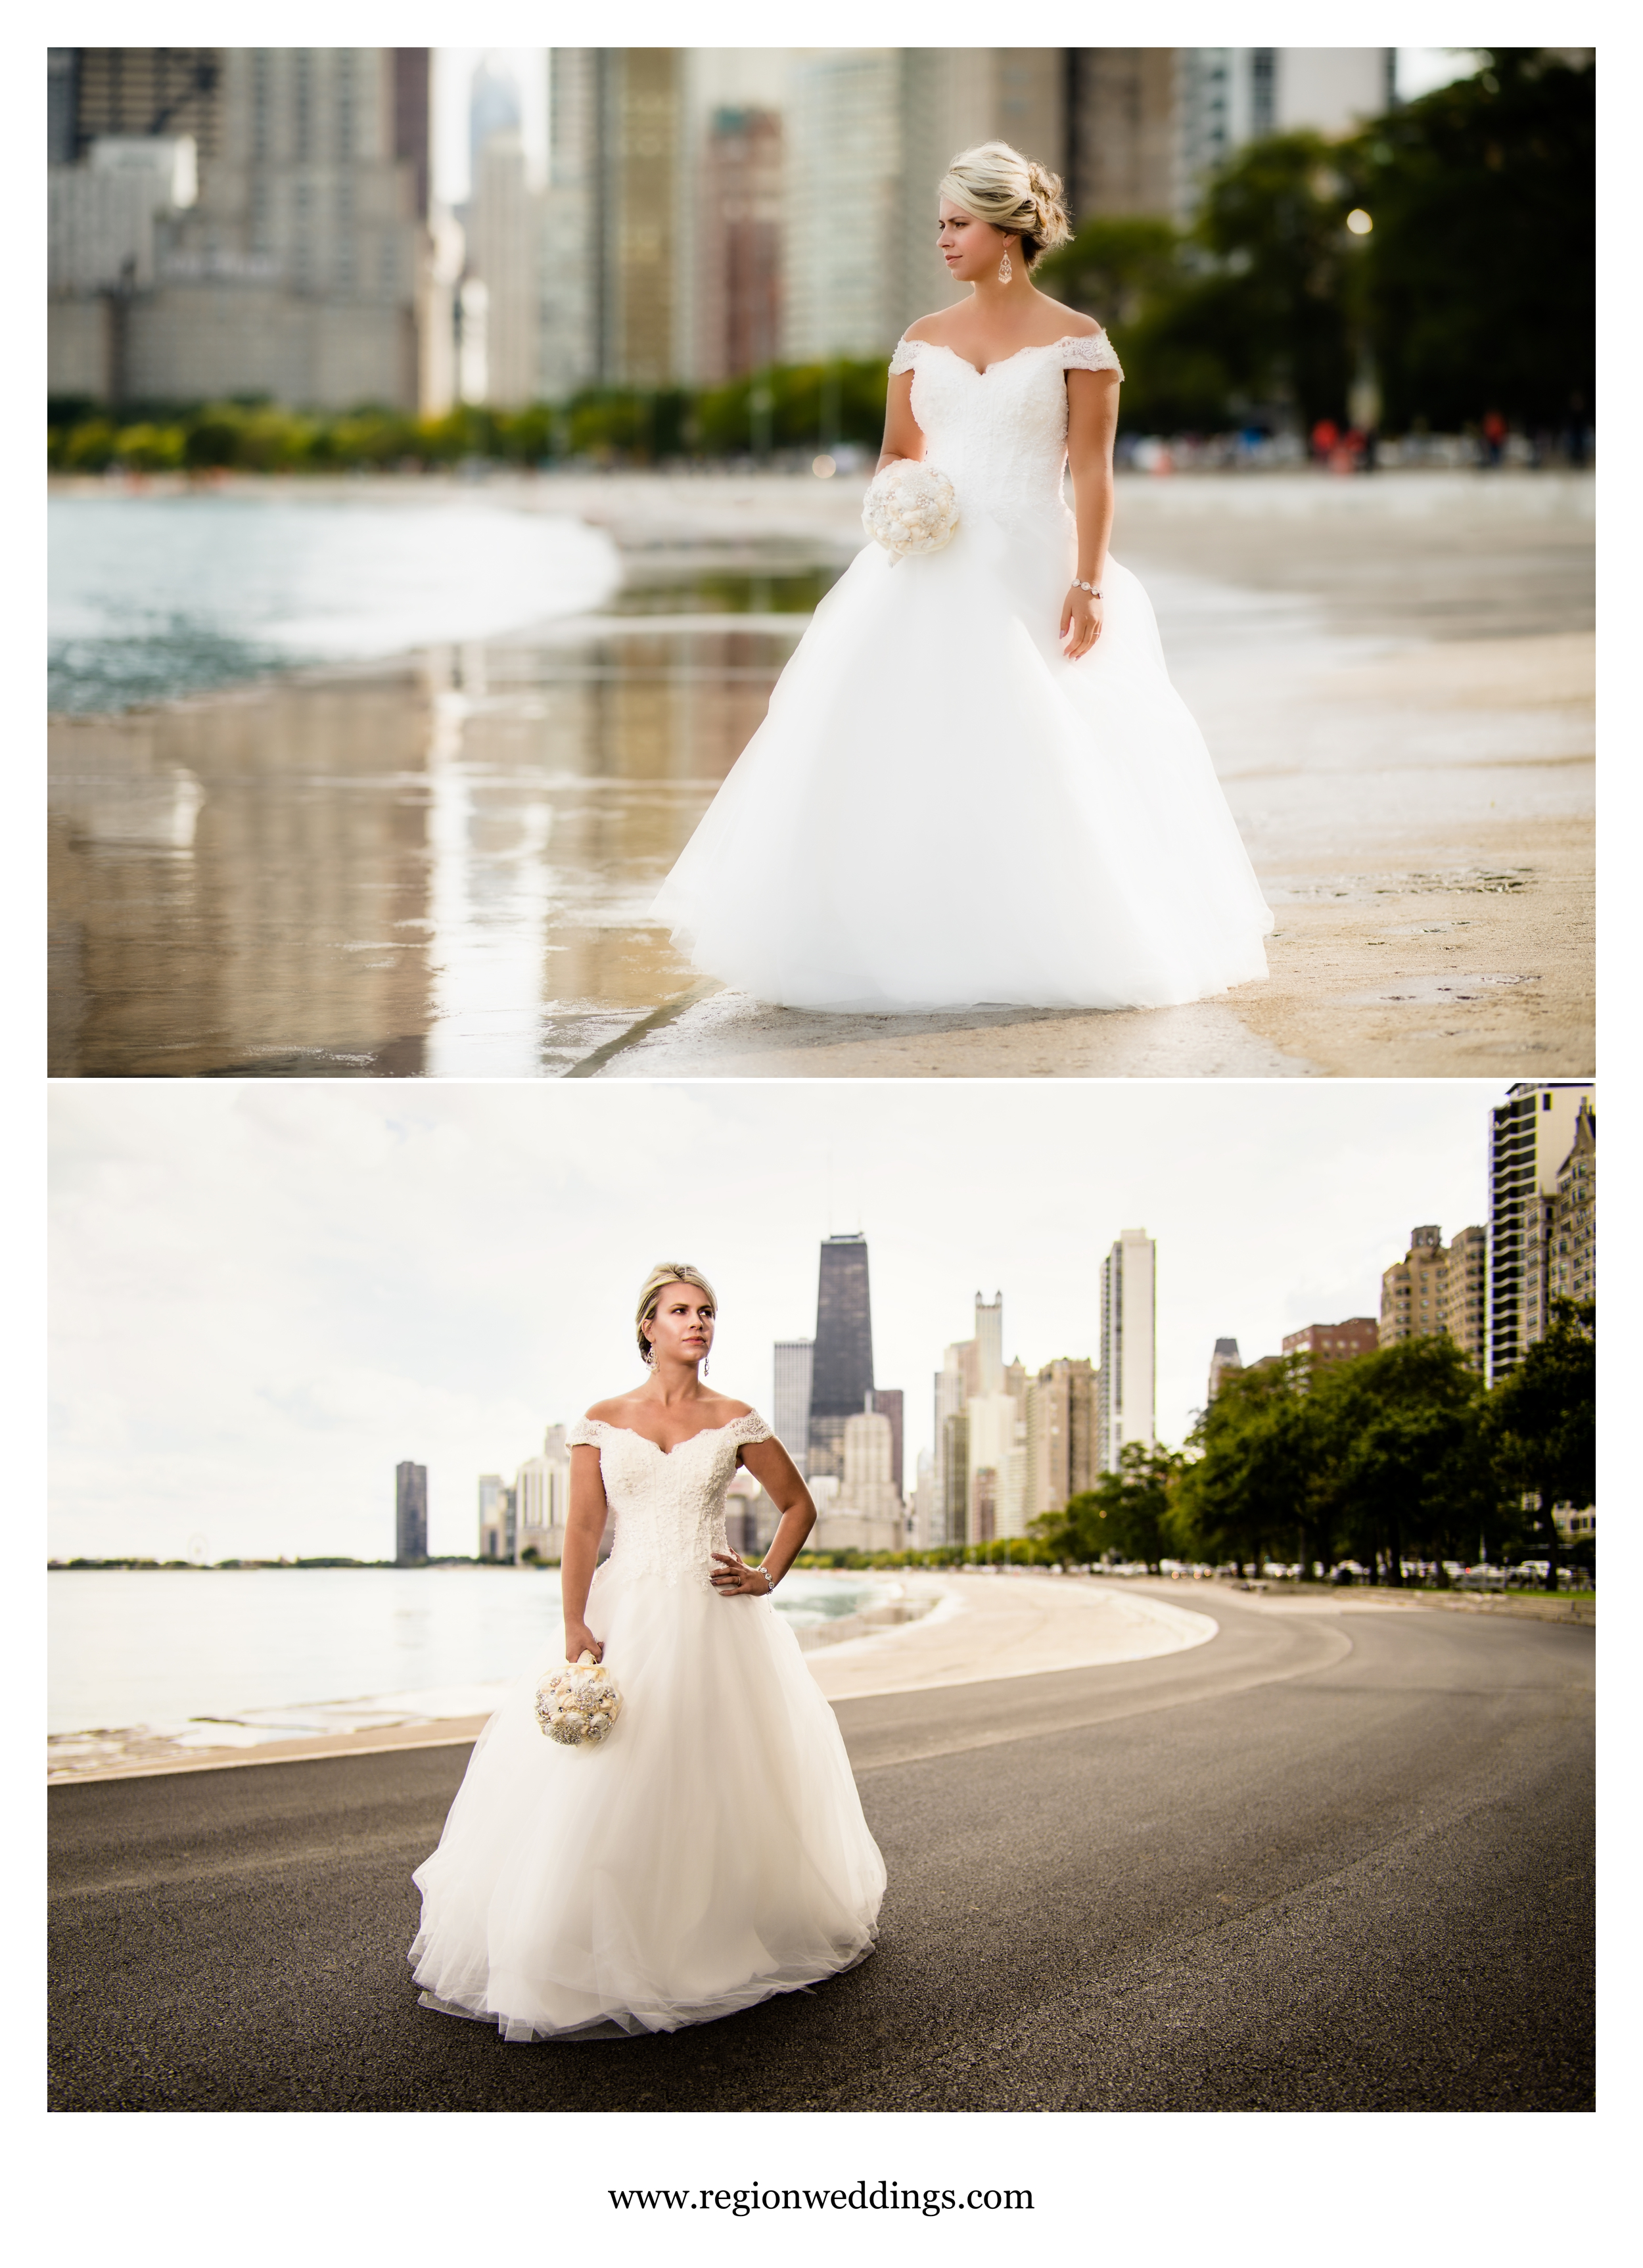 Images from a bridal portrait session in Chicago on North Avenue Beach.